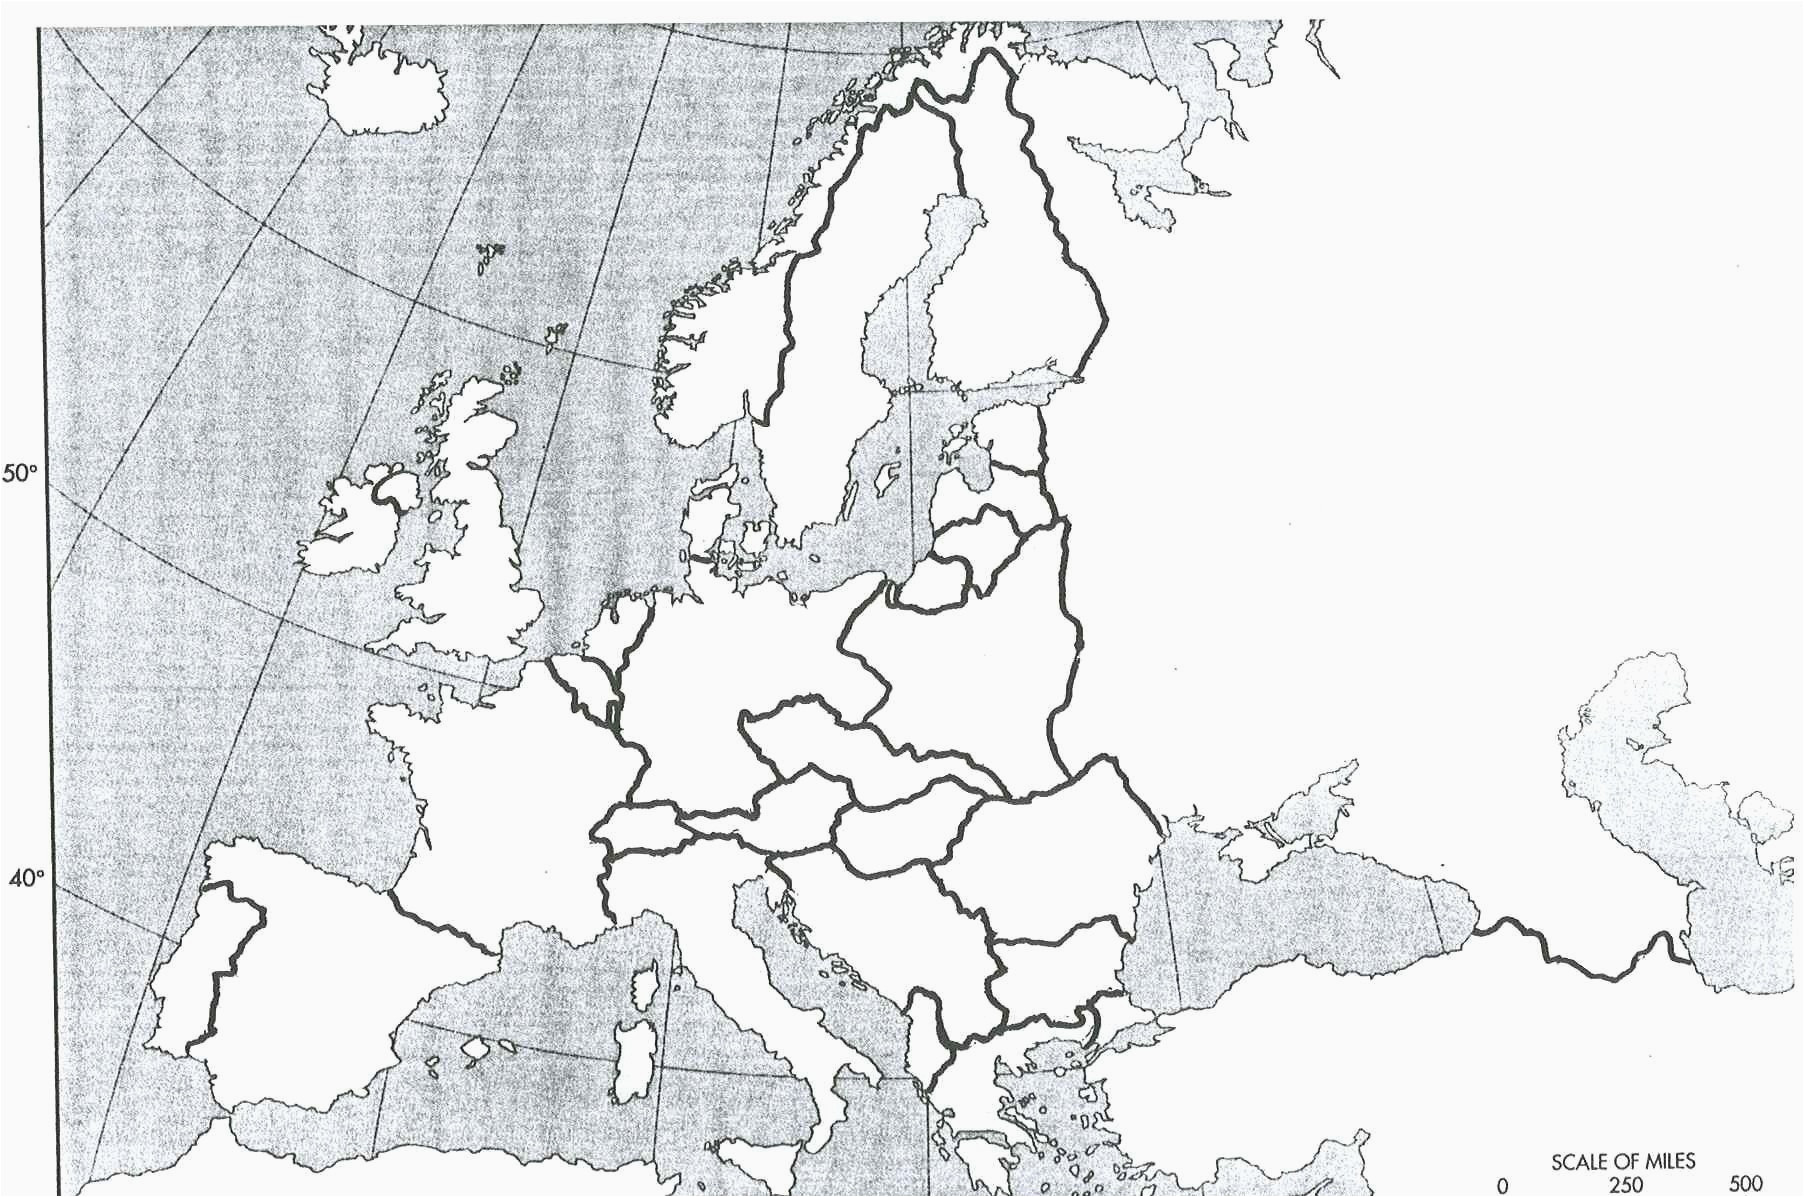 Europe In World War 1 Map Five Continents the World Best Europe In World War 1 Map